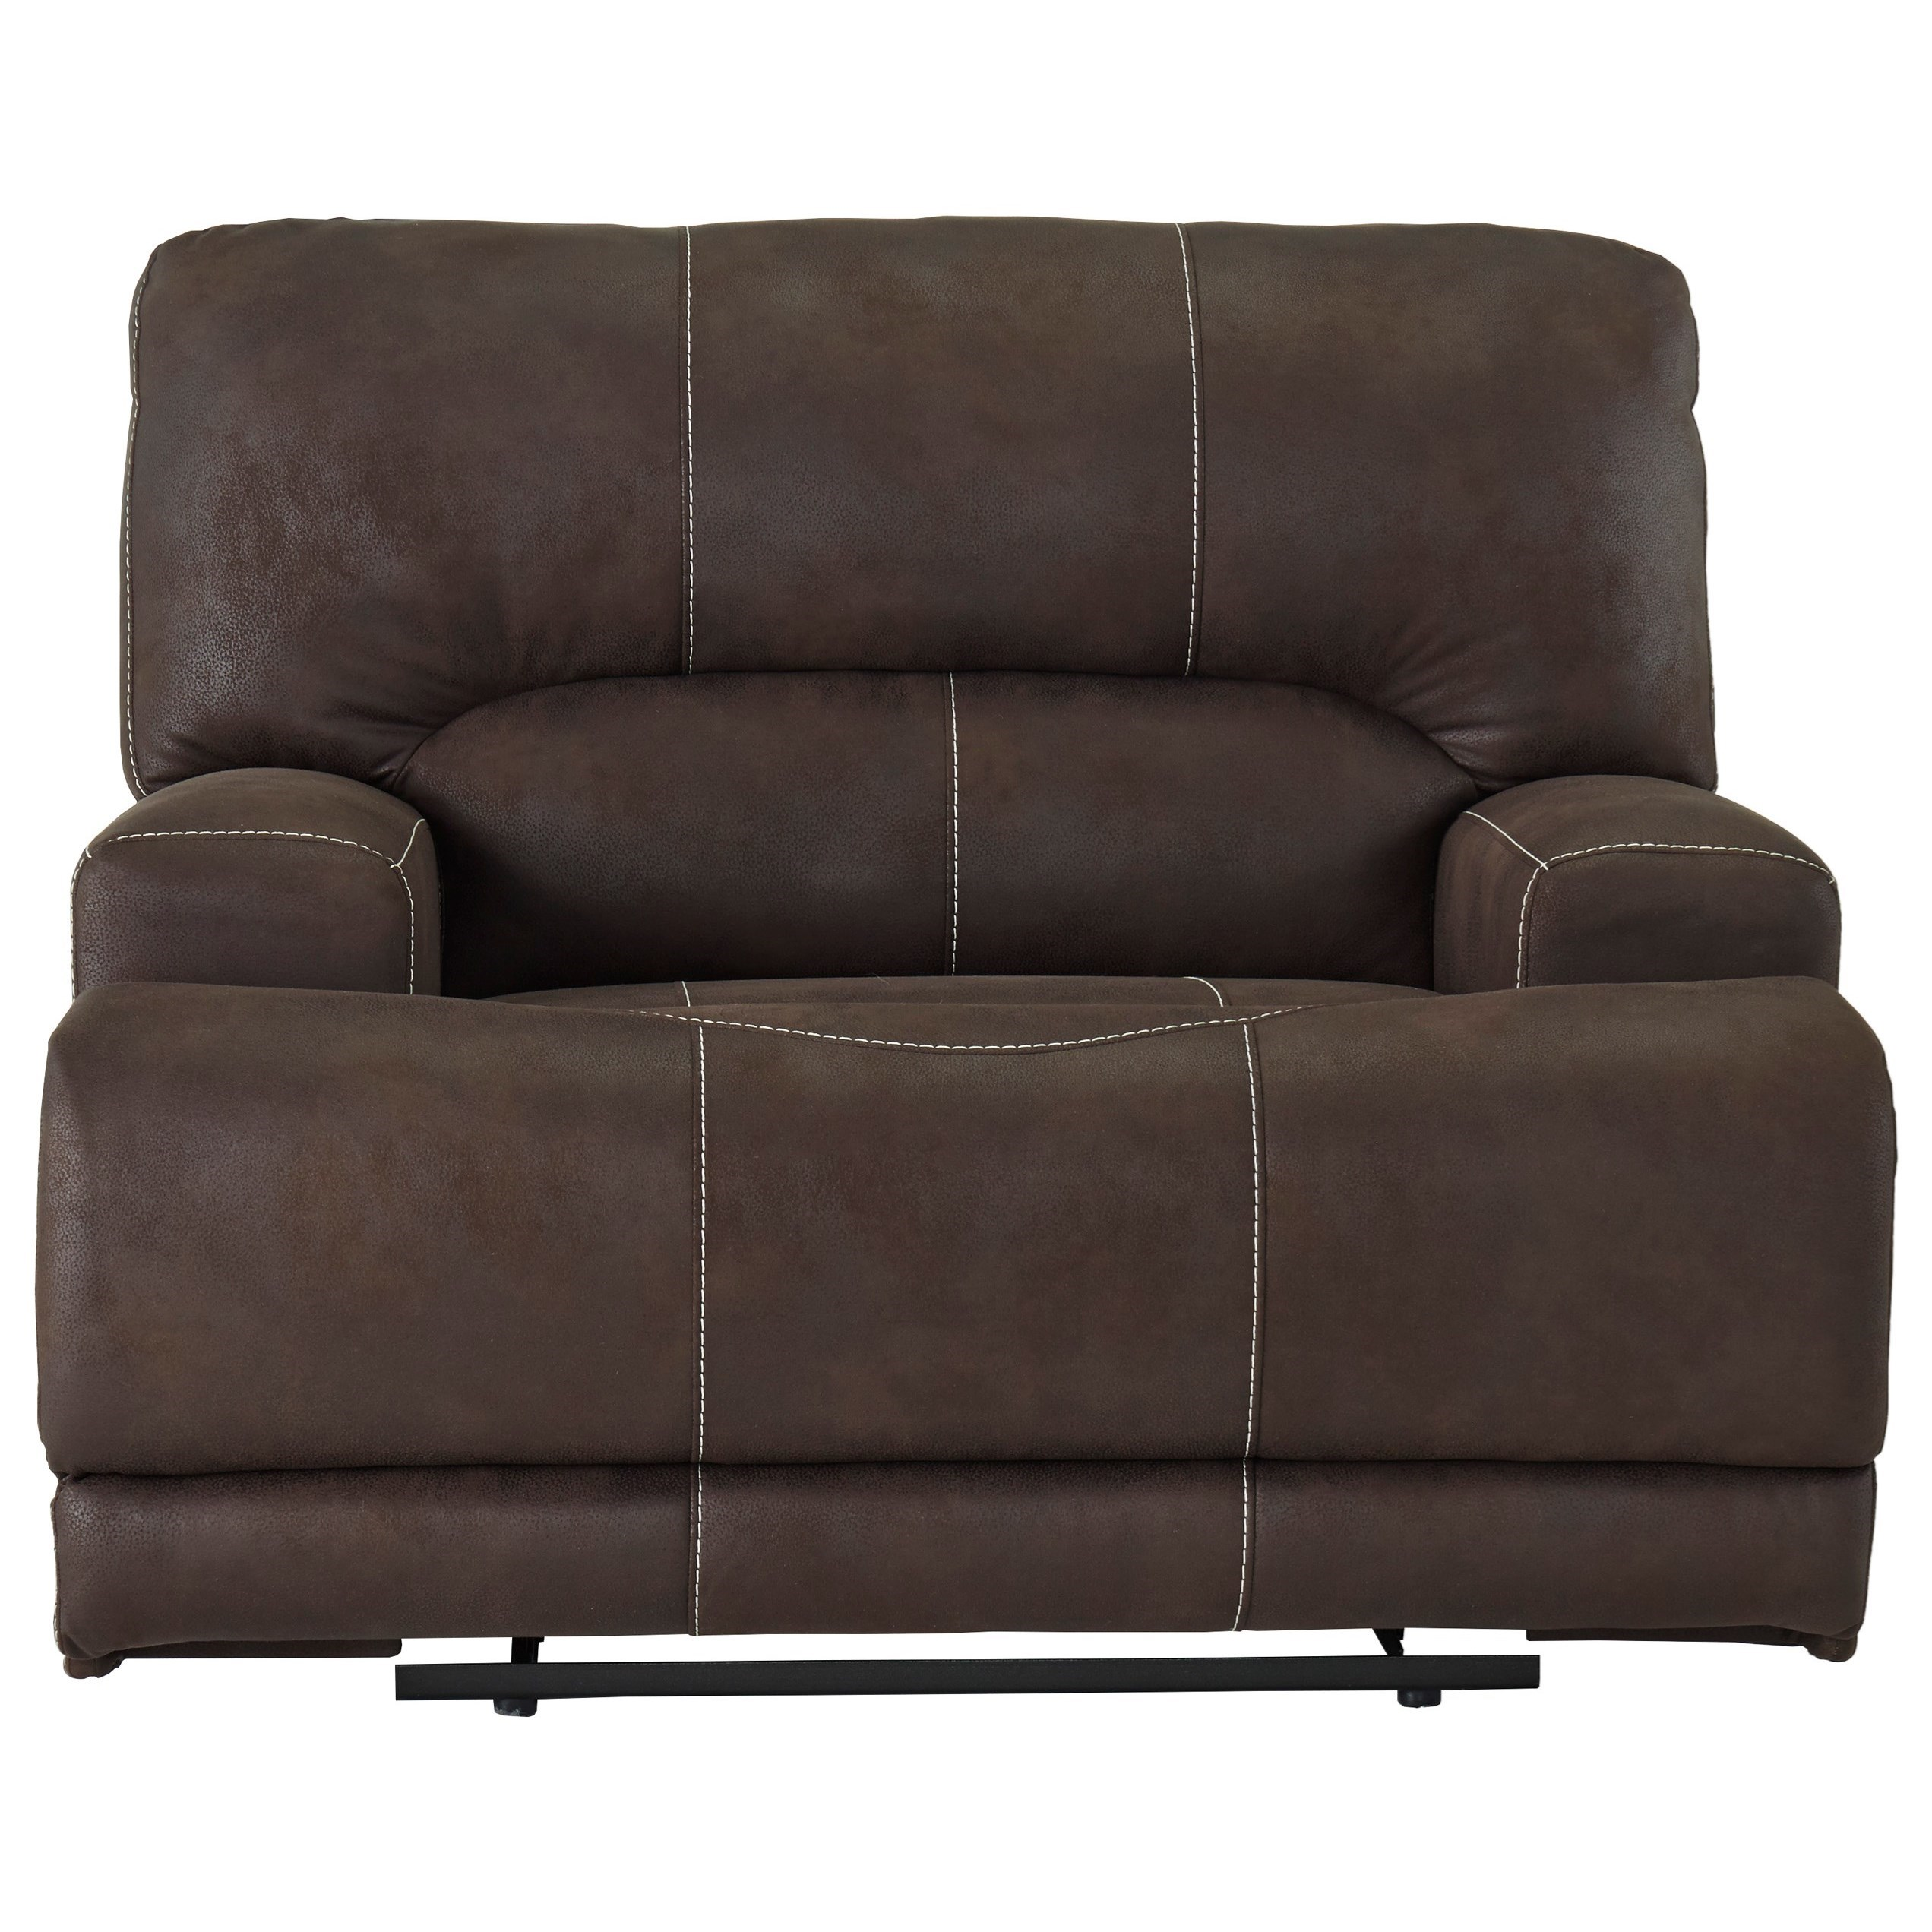 Kitching Wide Seat Power Recliner by Signature Design by Ashley at Northeast Factory Direct